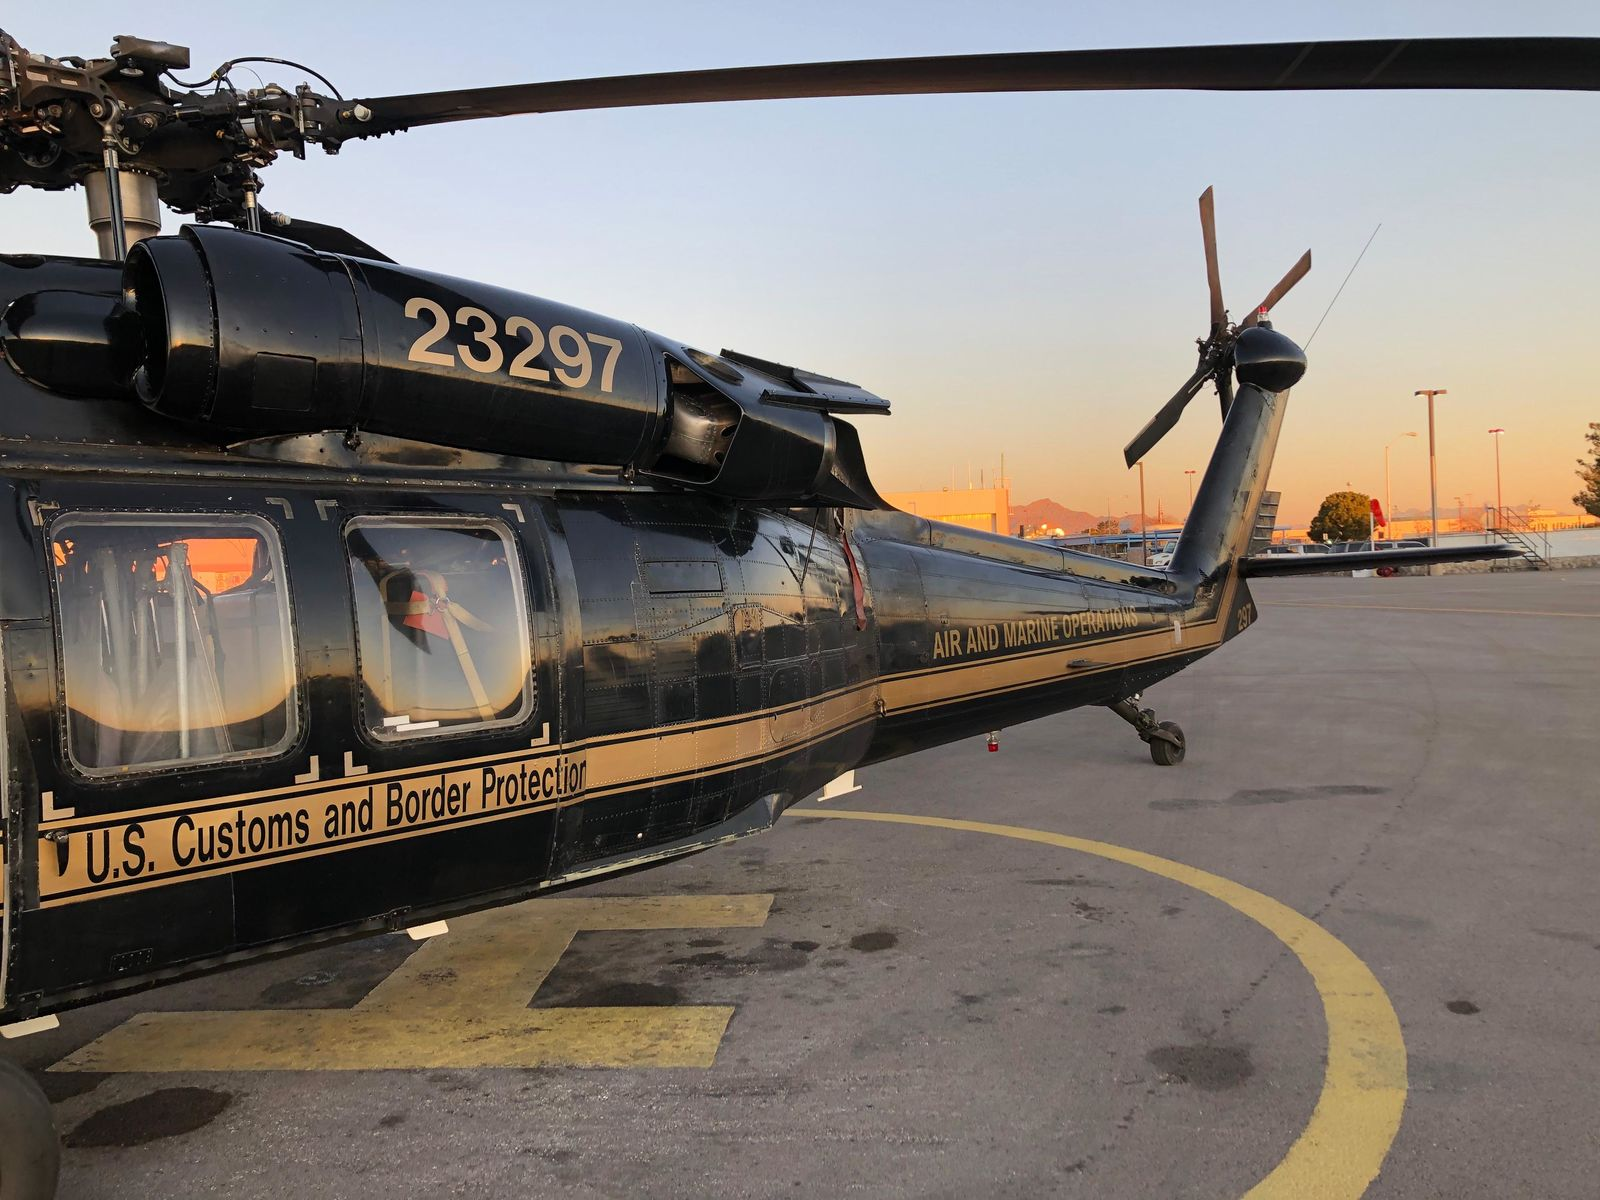 U.S. Customs and Border Protection's Air and Marine Operations El Paso Branch got an upgrade with the addition of a UH-60A+ Black Hawk. Two more UH-60 Black Hawks are expected for delivery, with one arriving in spring 2020 and the other in 2021. (Source: U.S. Customs and Border Protection)